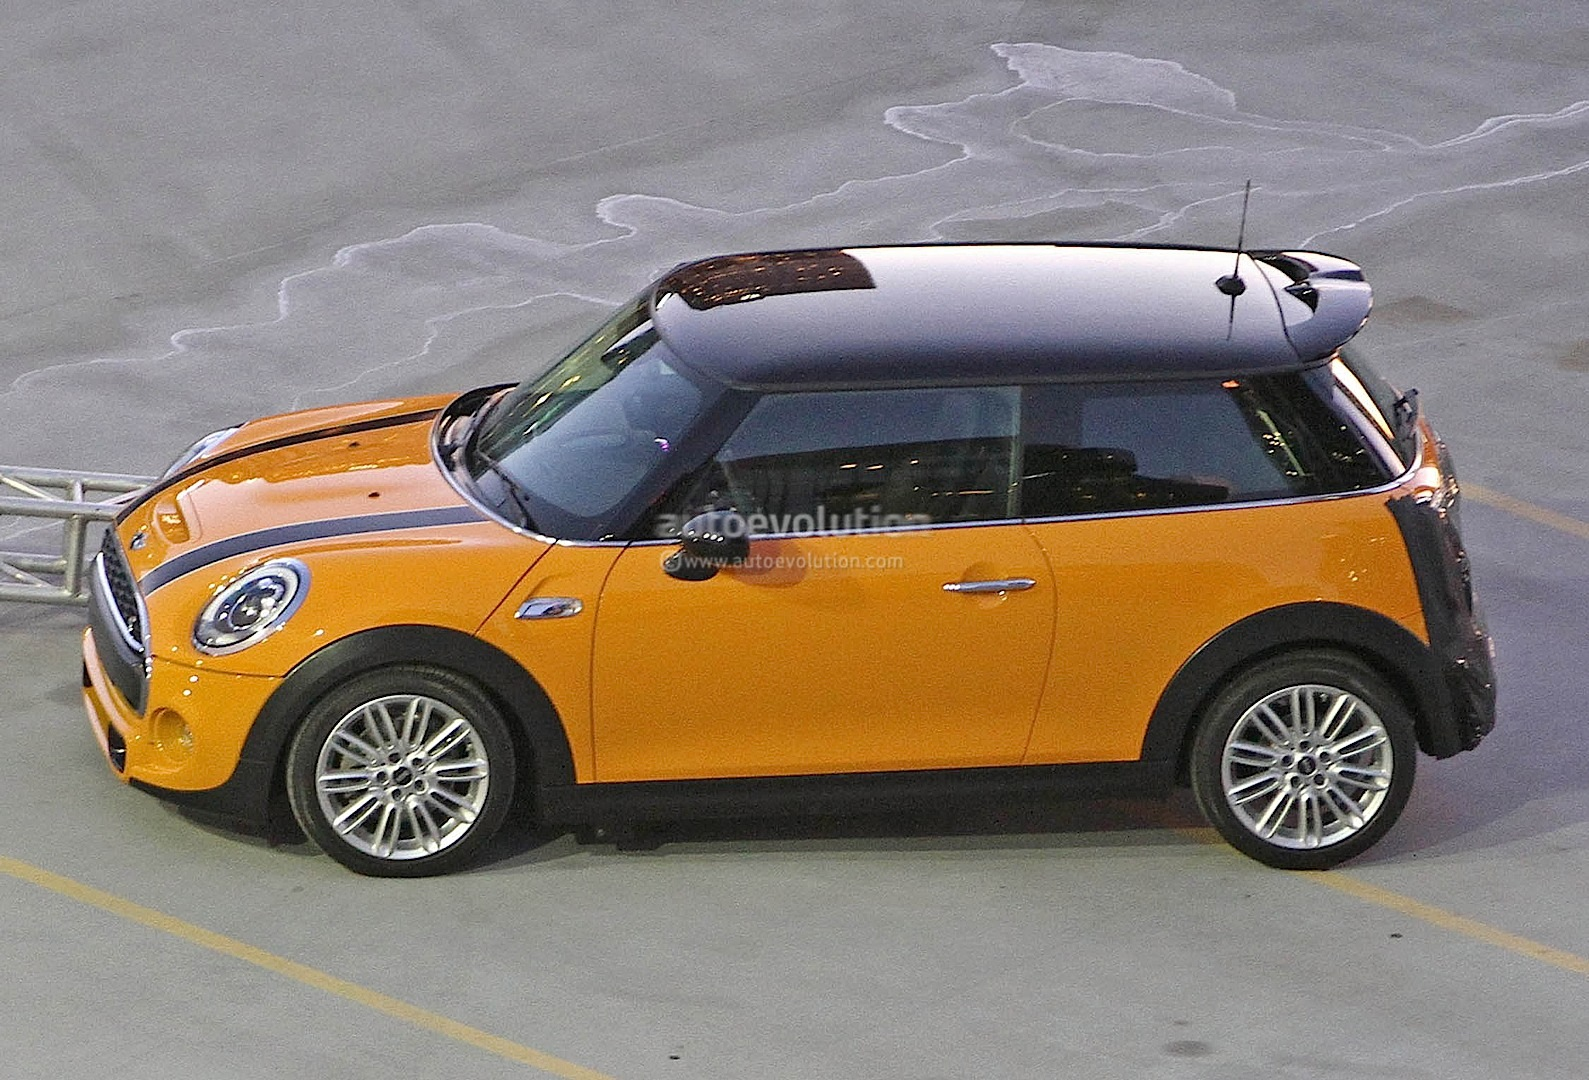 2014 mini cooper s 39 accidentally 39 unveiled autoevolution. Black Bedroom Furniture Sets. Home Design Ideas